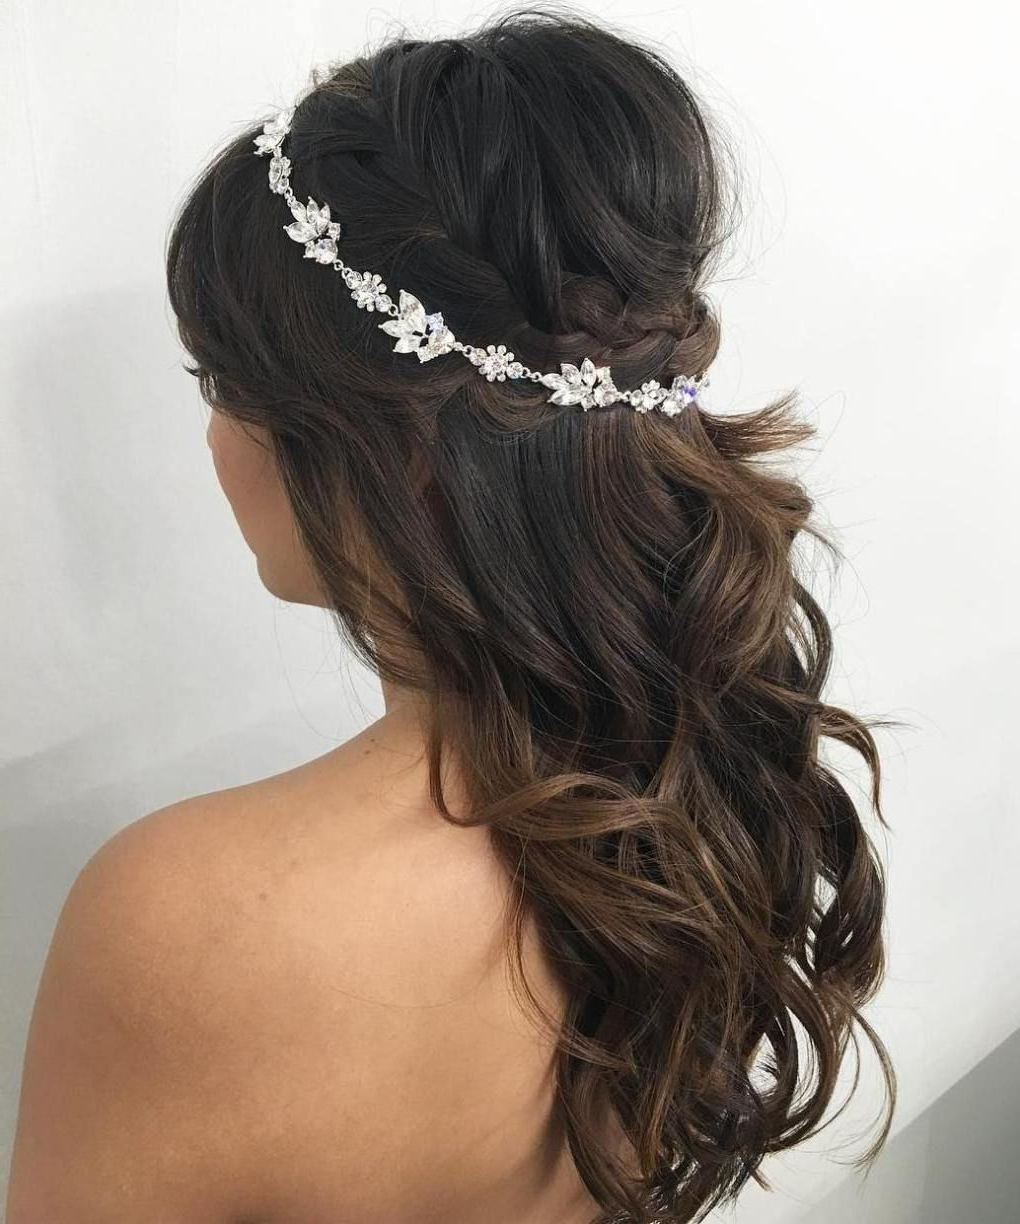 Famous Loose Curly Half Updo Wedding Hairstyles With Bouffant In 40 Gorgeous Wedding Hairstyles For Long Hair (Gallery 15 of 20)